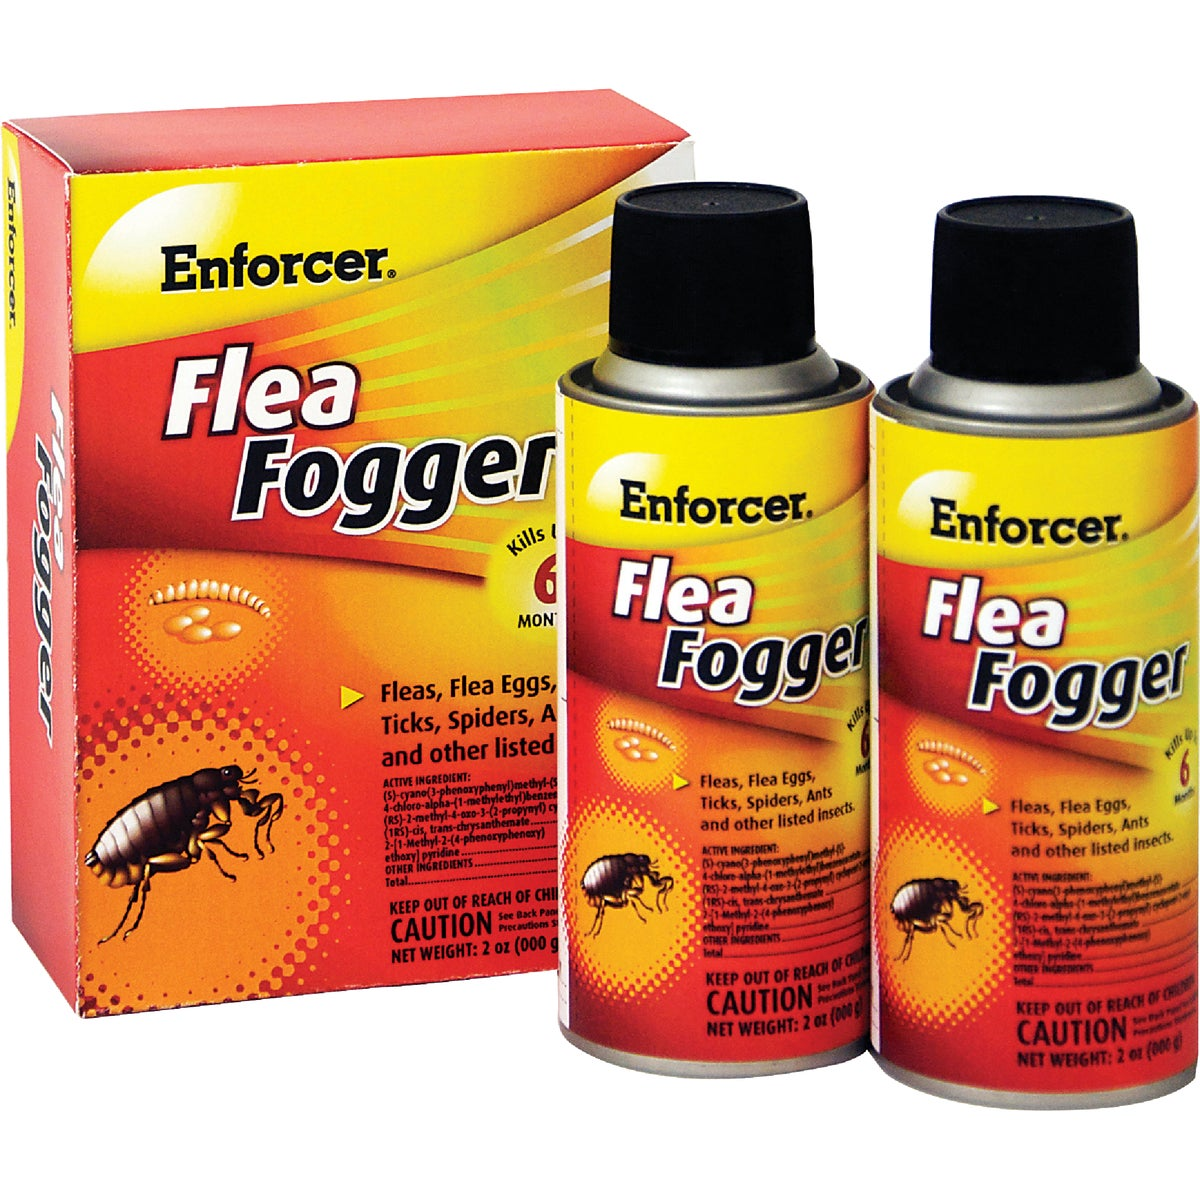 2PK FLEA FOGGER - EFF2 by Zep Enforcer Inc